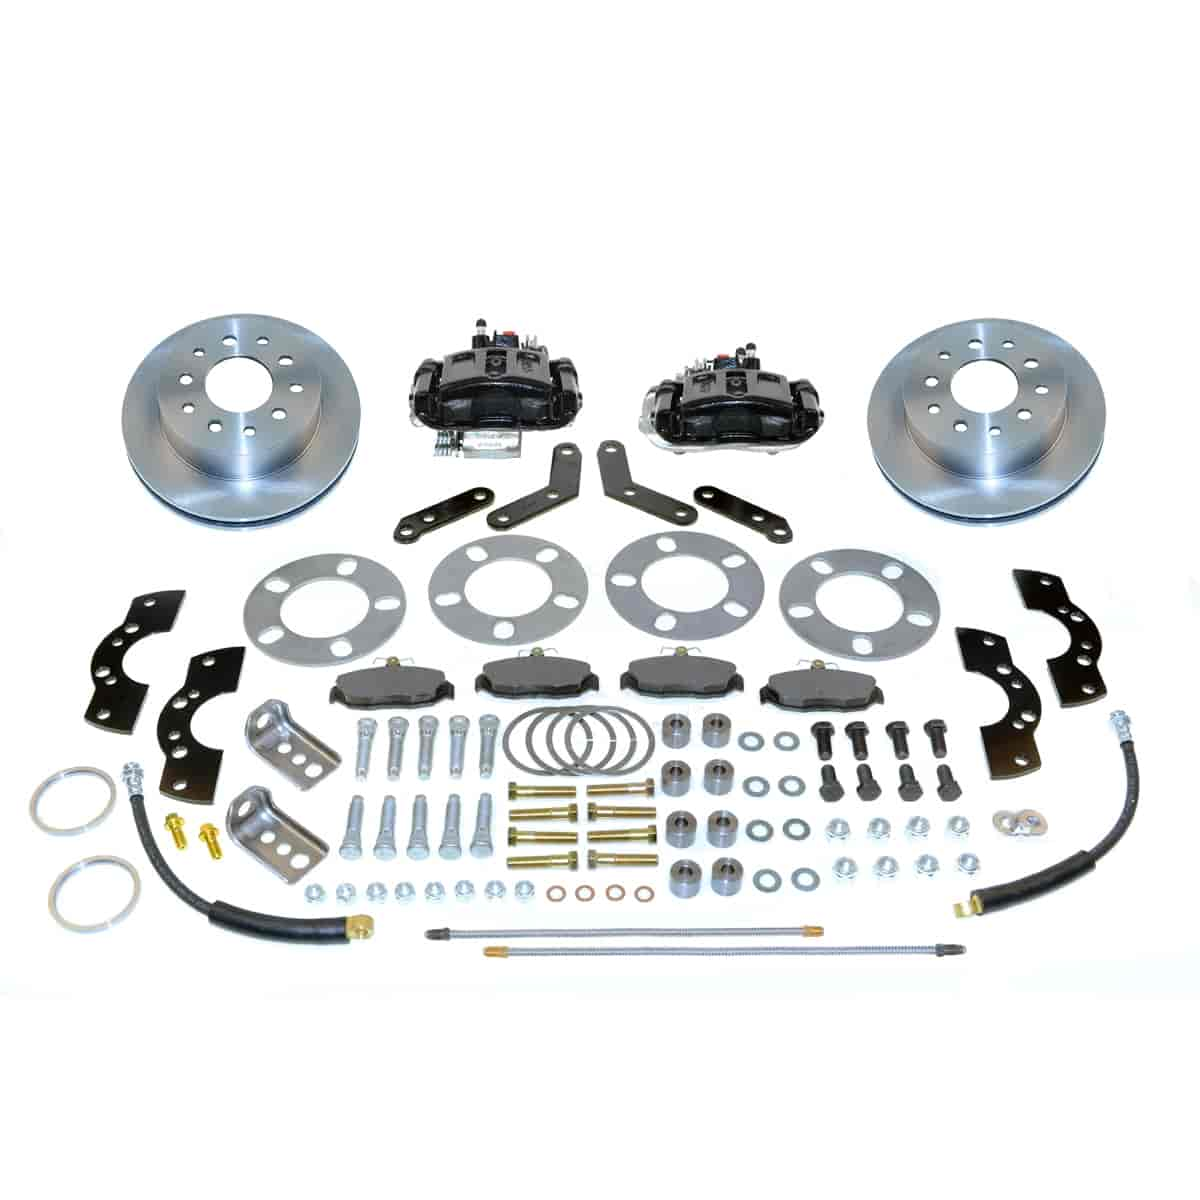 Stainless Steel Brakes A111-2BK - Stainless Steel Brakes Single Piston Rear Disc Brake Conversion Kit